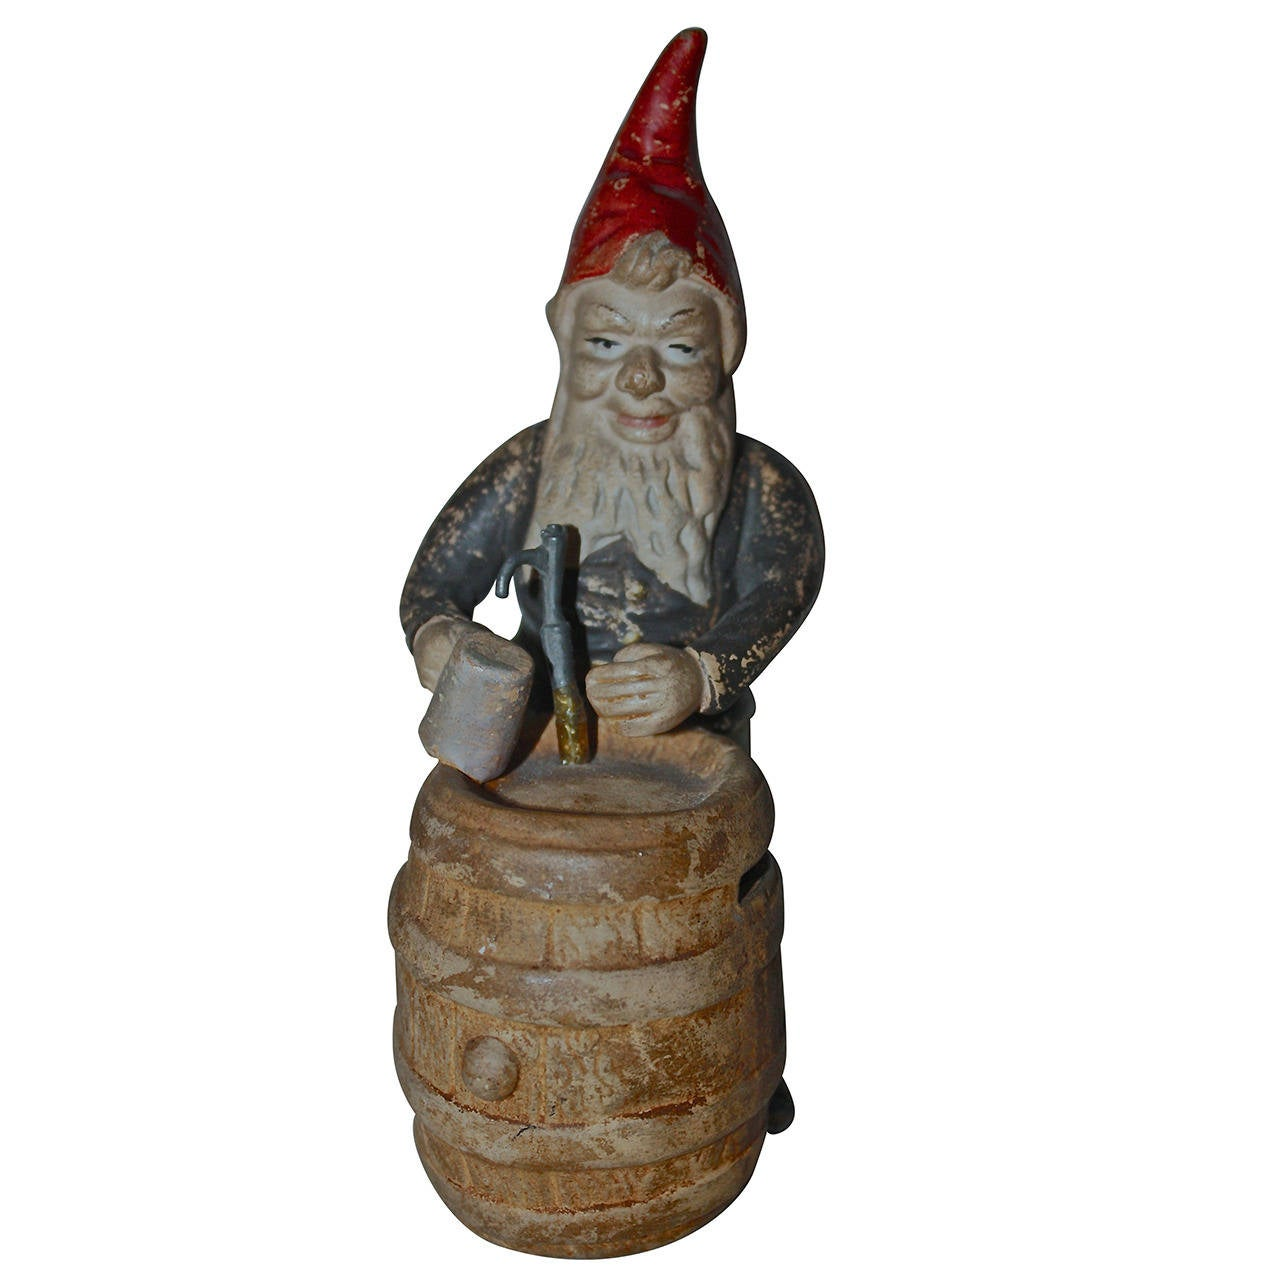 Christmas Elf with Beer Barrel Money Bank